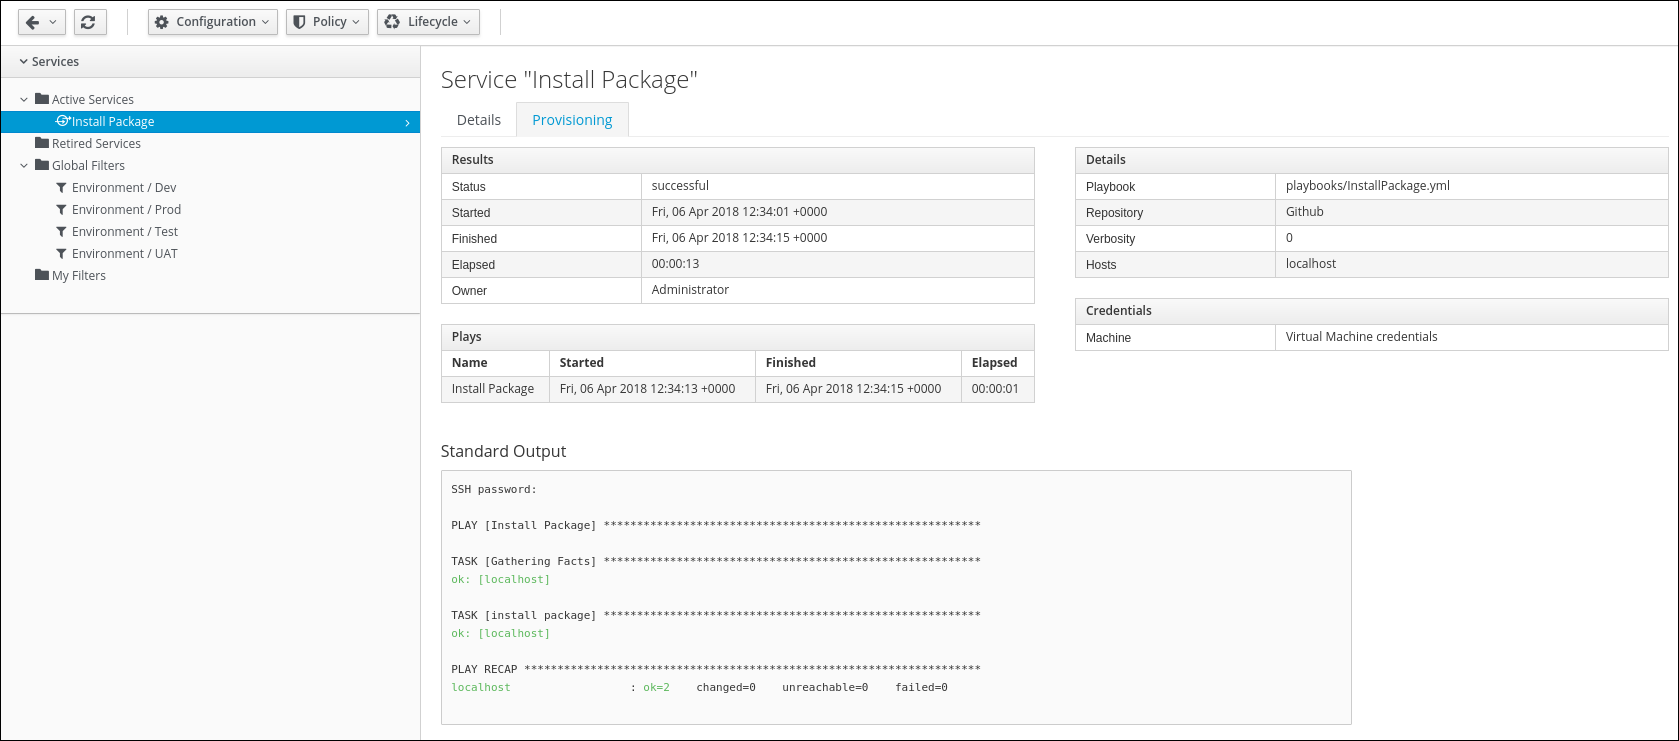 My Service Install Package Provisioning